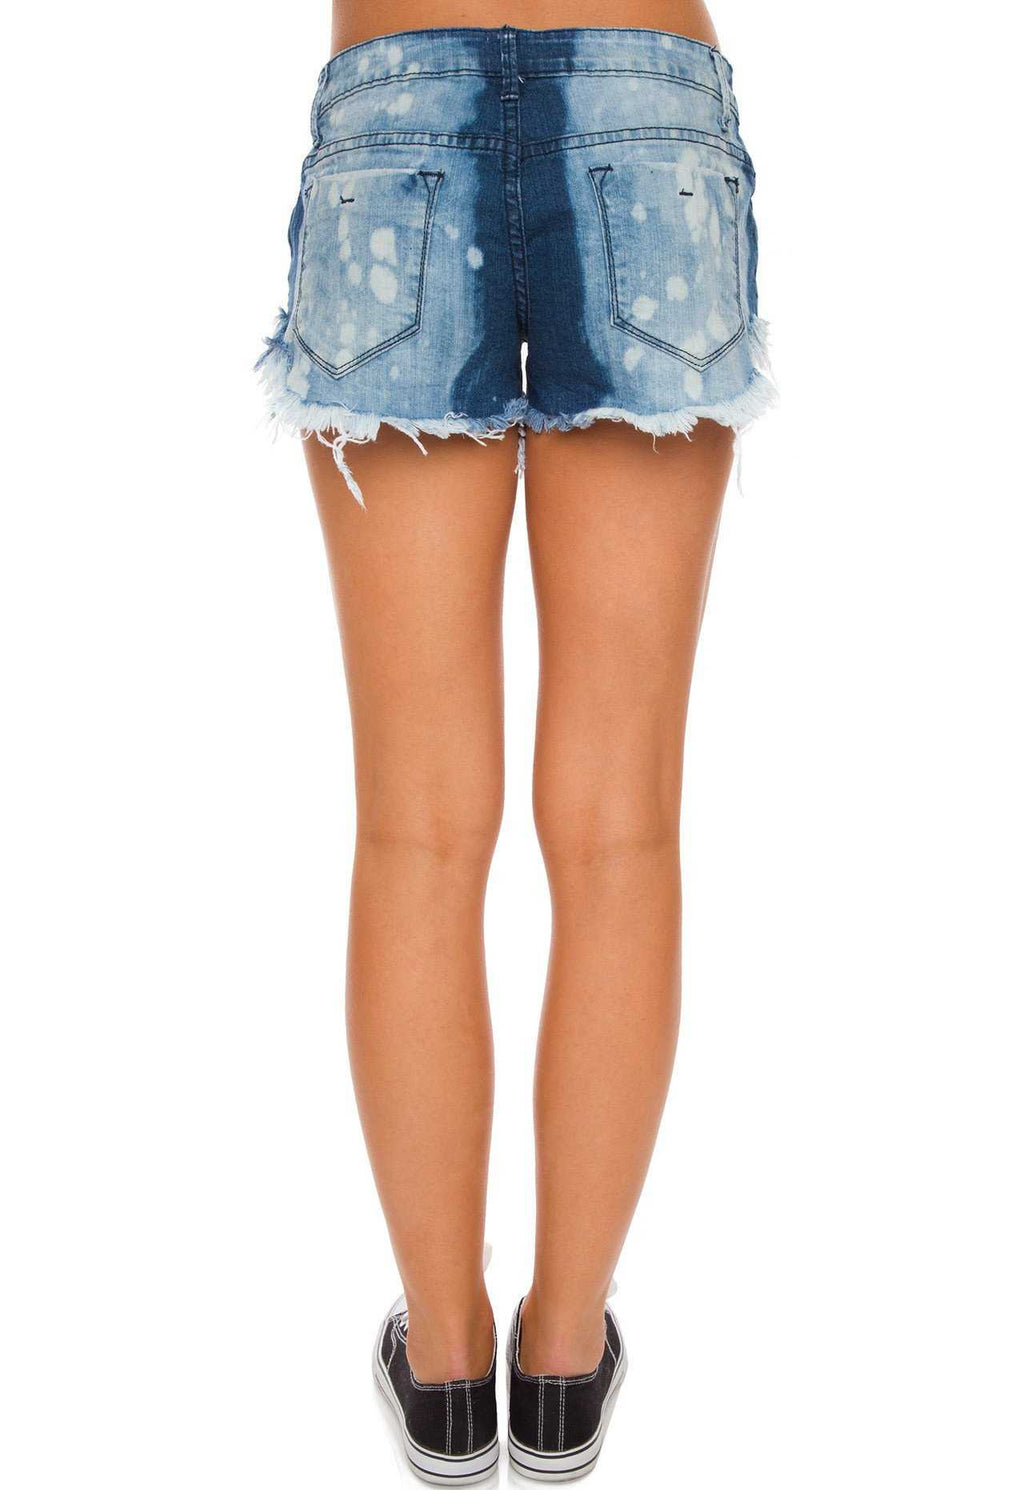 Shorts - Skye Distressed Shorts